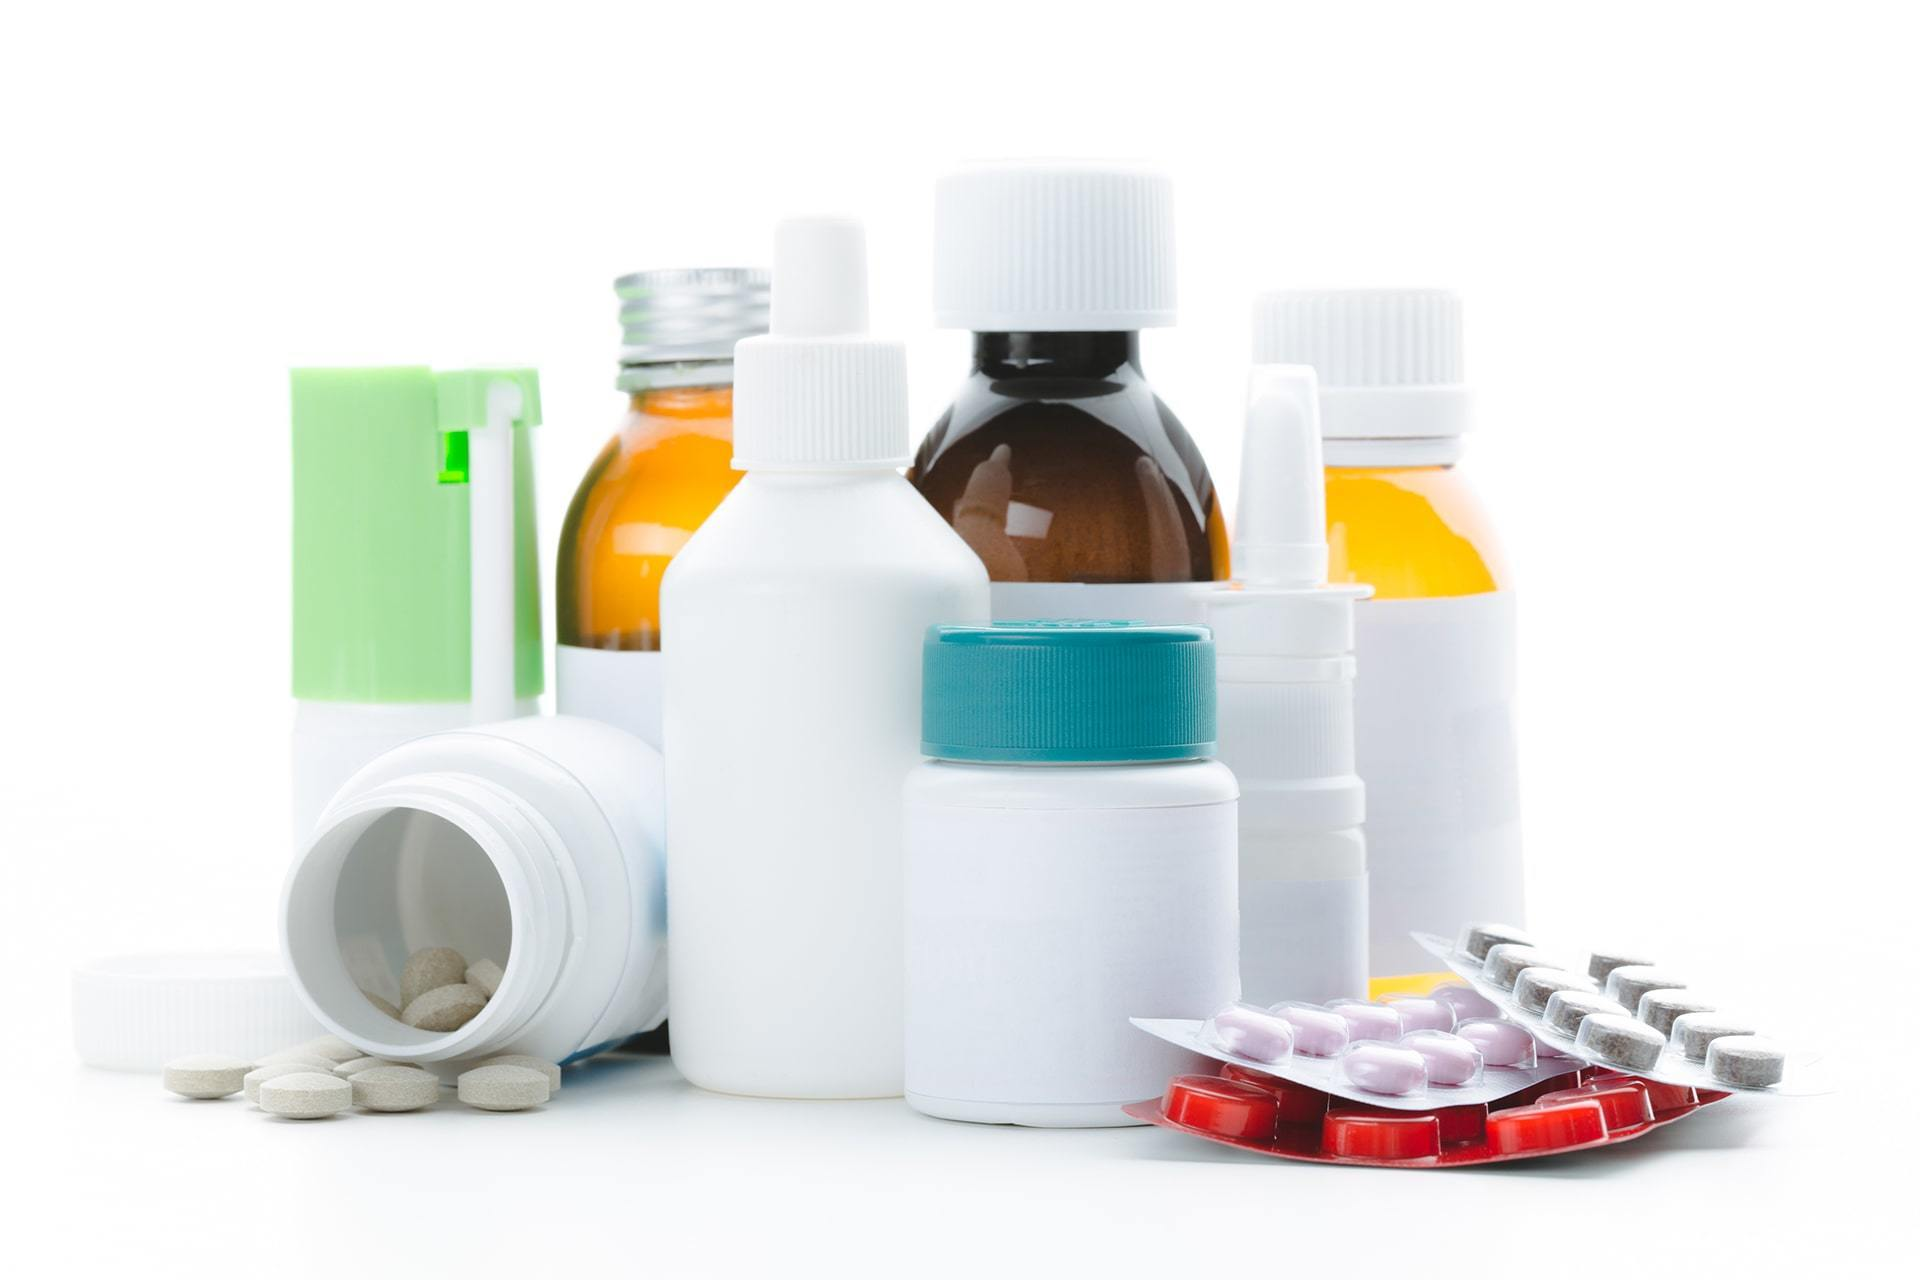 Pharmaceutical Products Resized-min